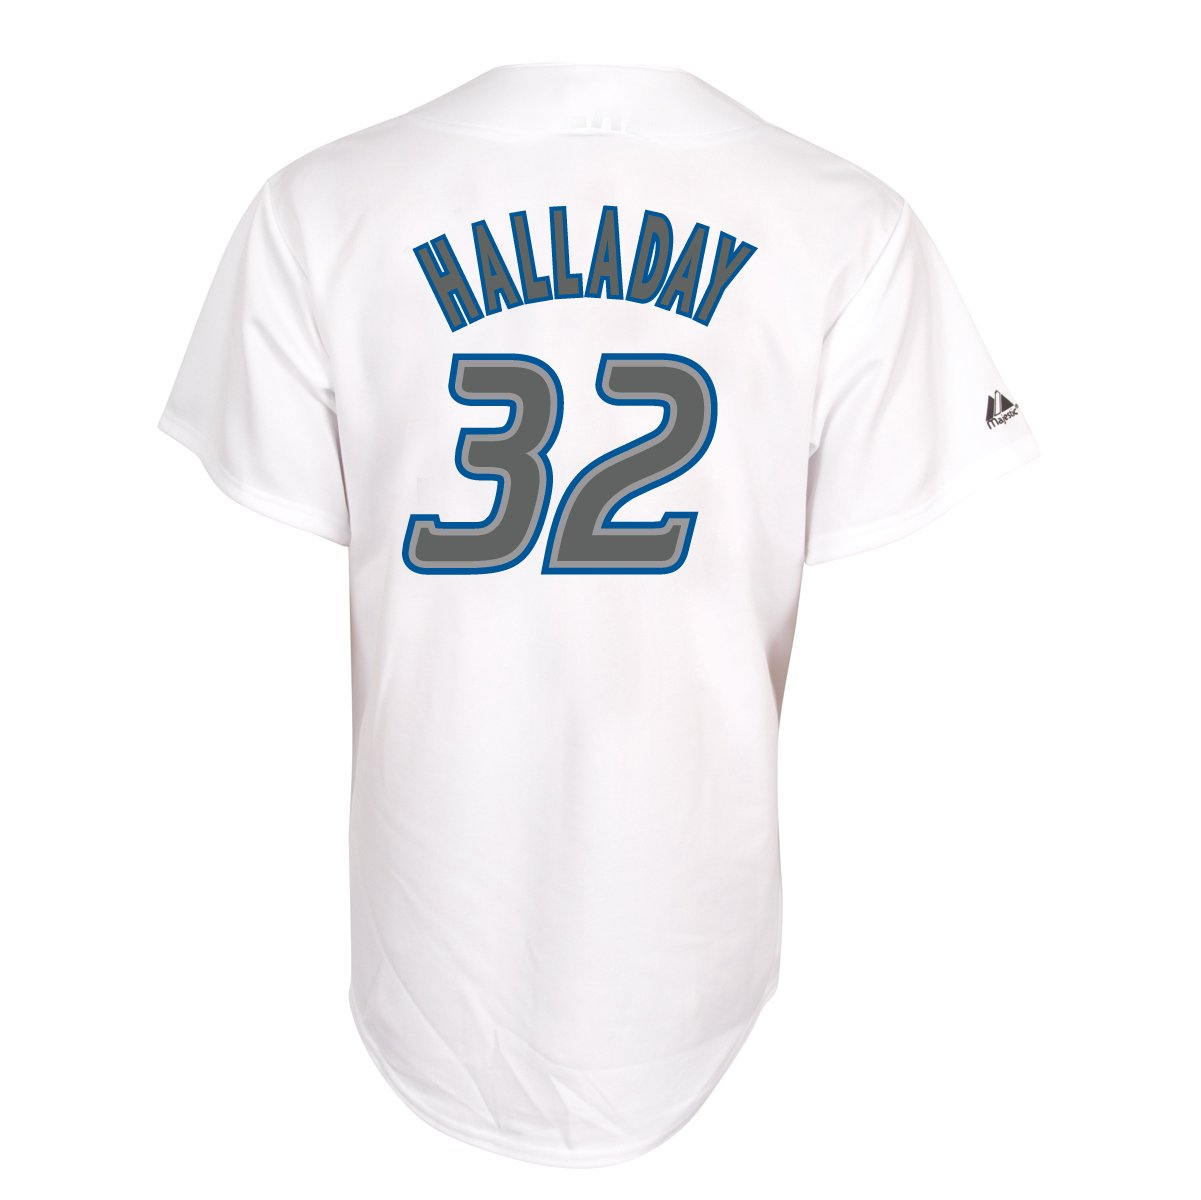 outlet store 0ab0f 06966 Amazon.com : Roy Halladay Toronto Blue Jays Replica Home ...